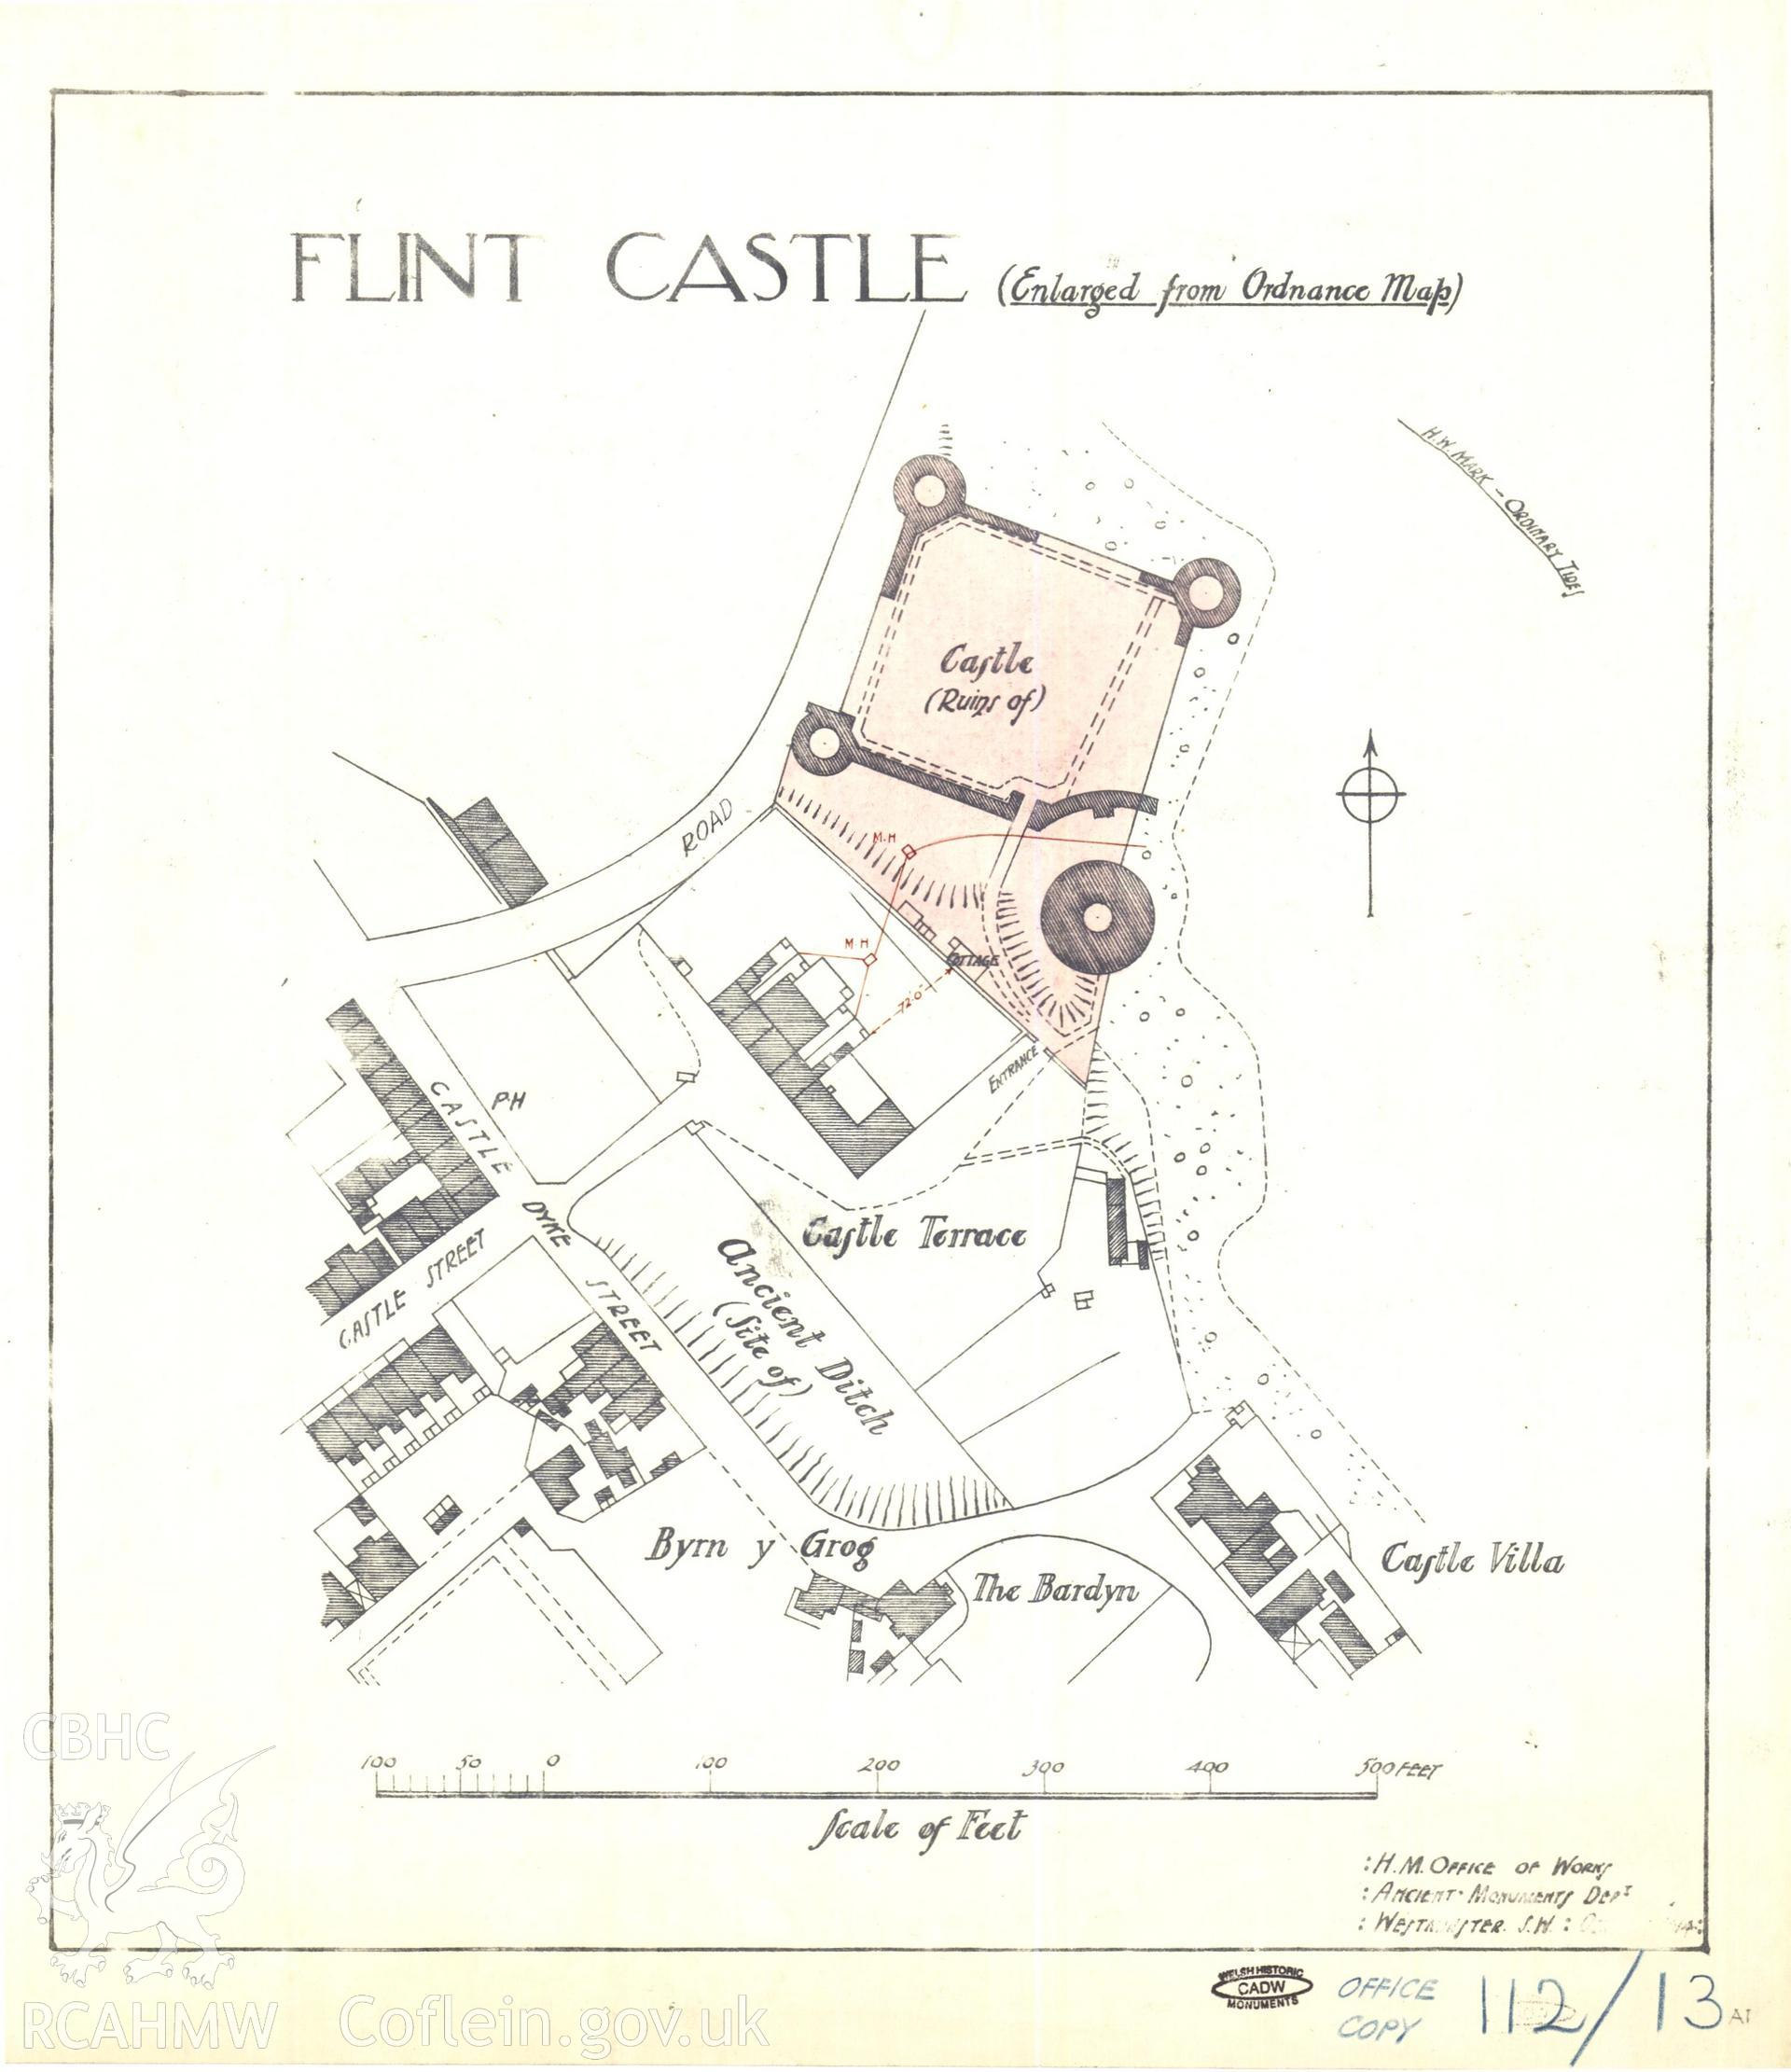 Cadw guardianship monument drawing of Flint Castle. Deed plan, for drains + site hut. Cadw Ref. No:112/13A1. Scale 1:840.